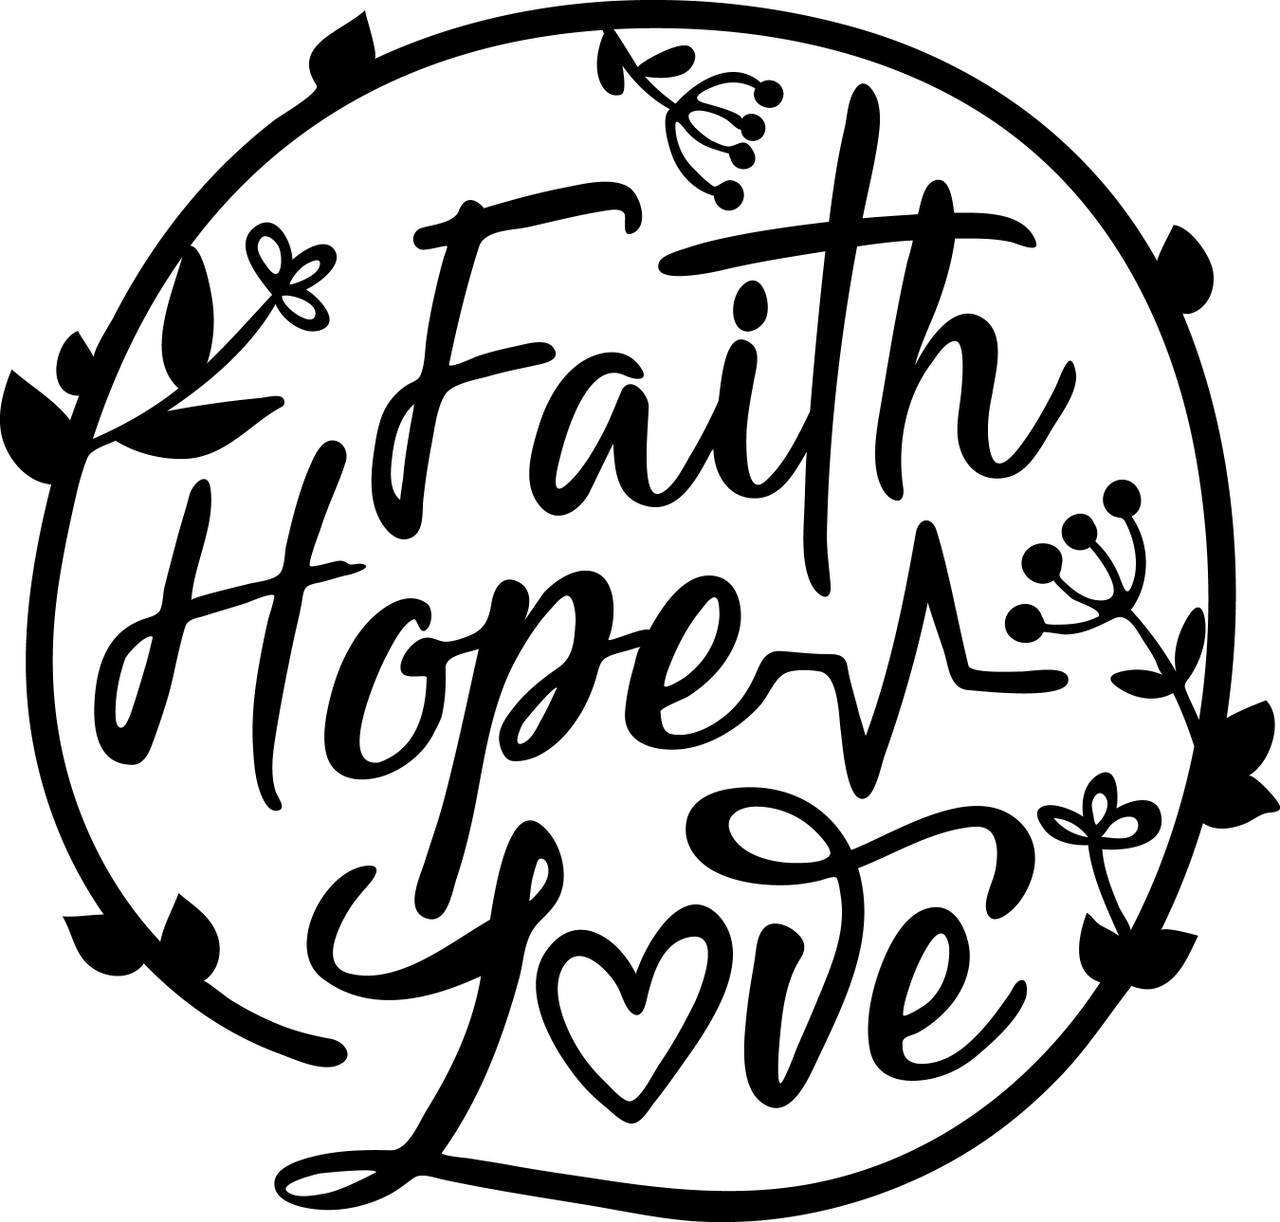 Free Faith Hope Love Svg Cut File Craftables